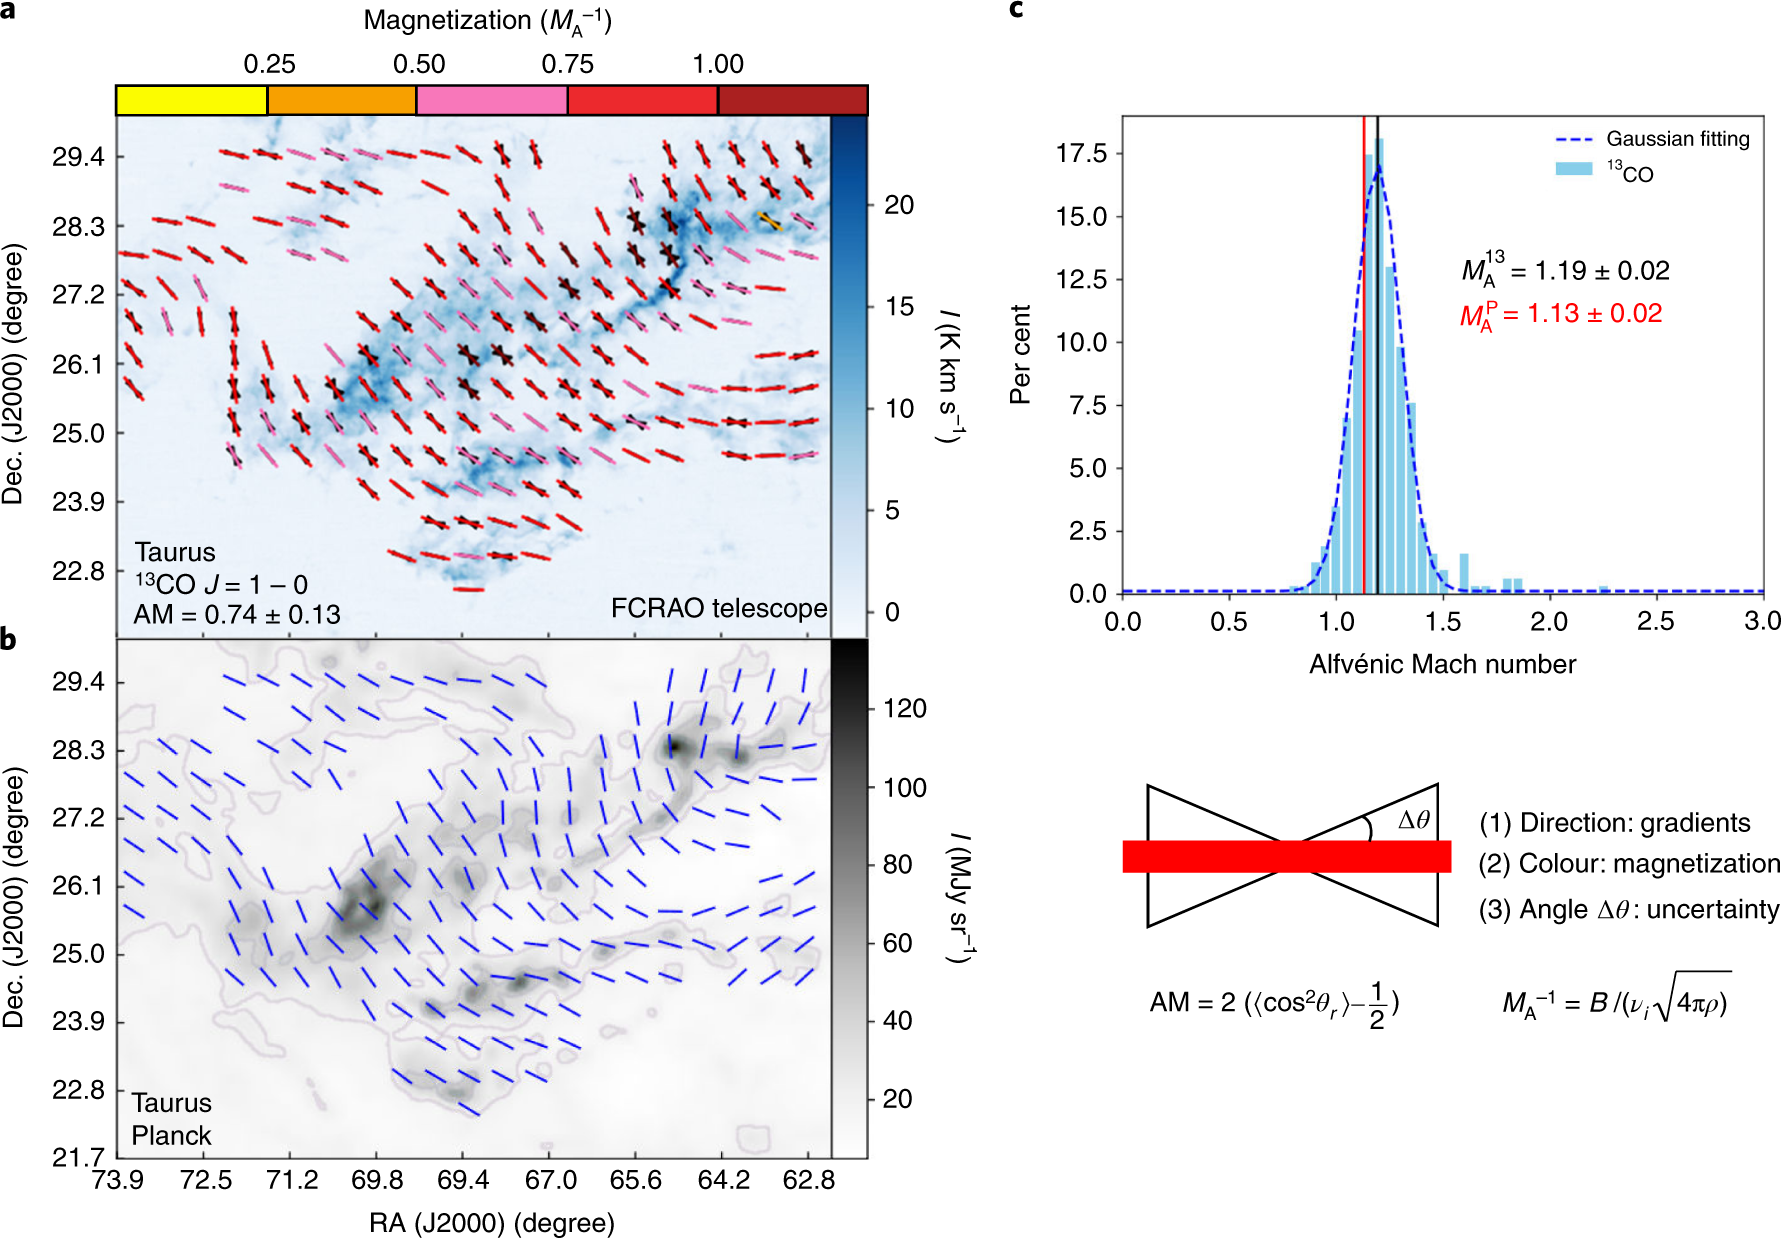 Magnetic field morphology in interstellar clouds with the velocity